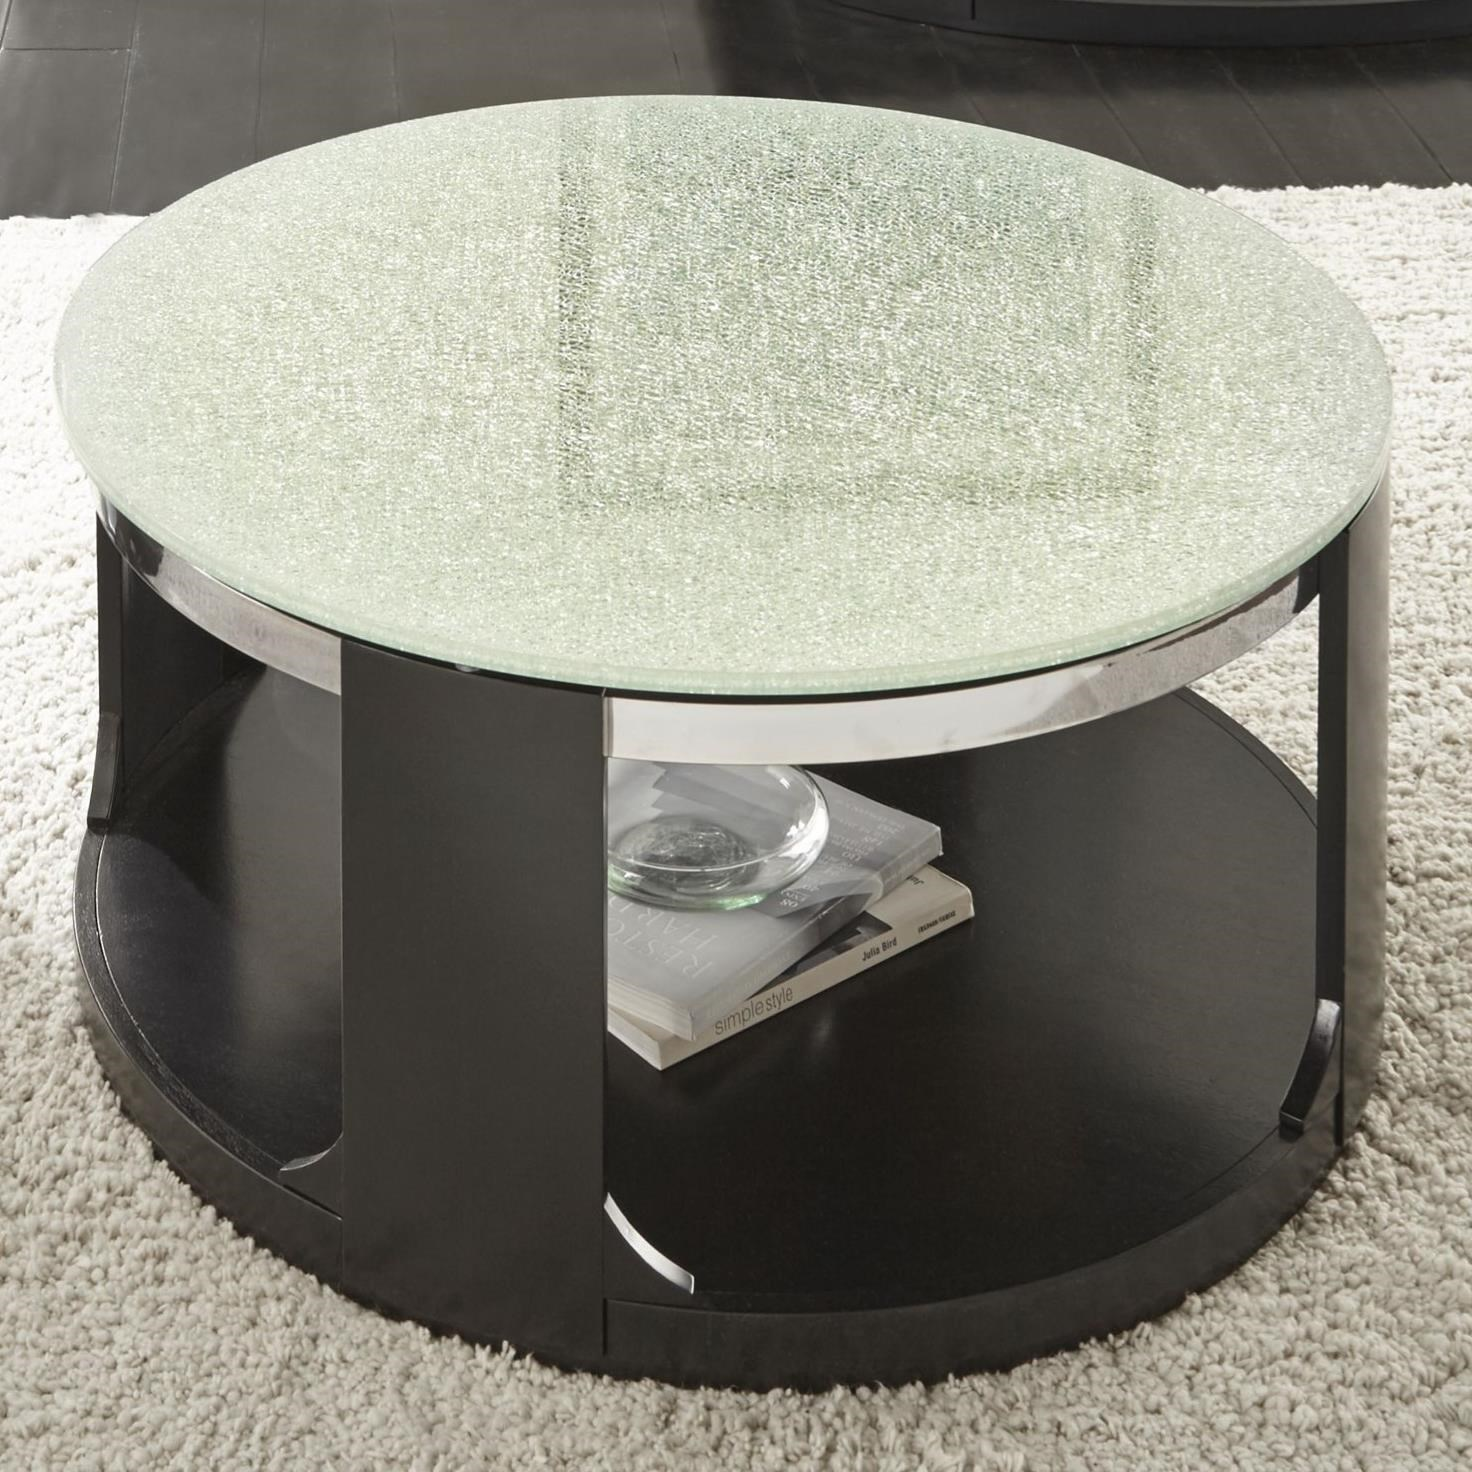 Crackled Glass Cocktail Table with Casters